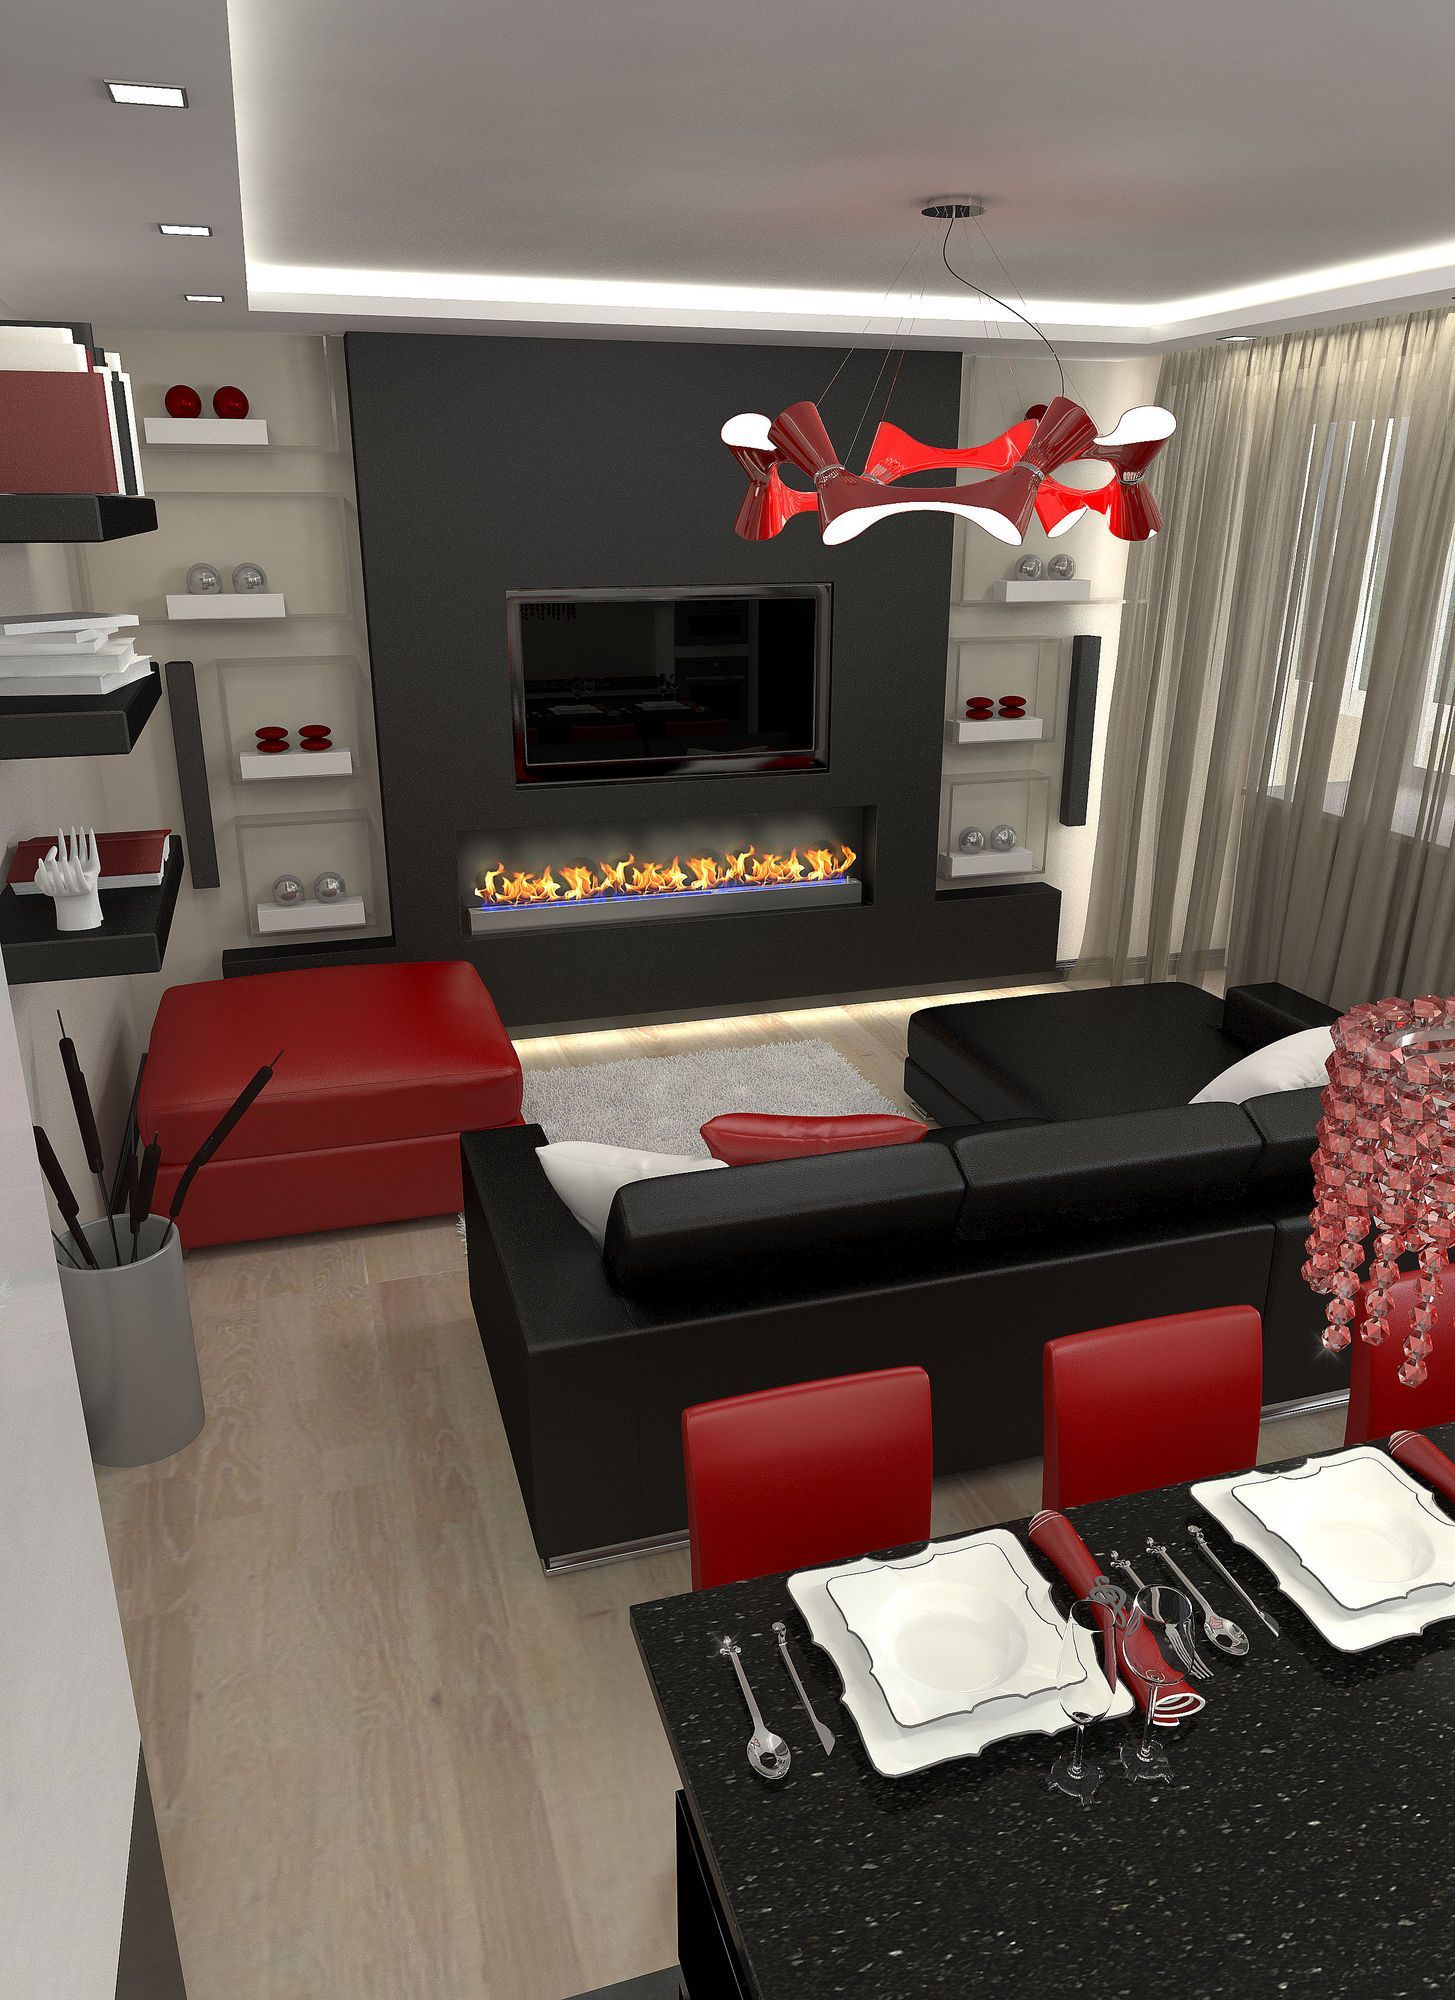 11 Genius Designs Of How To Craft Red And Black Living Room in 14 Smart Designs of How to Build Red And Black Living Room Set